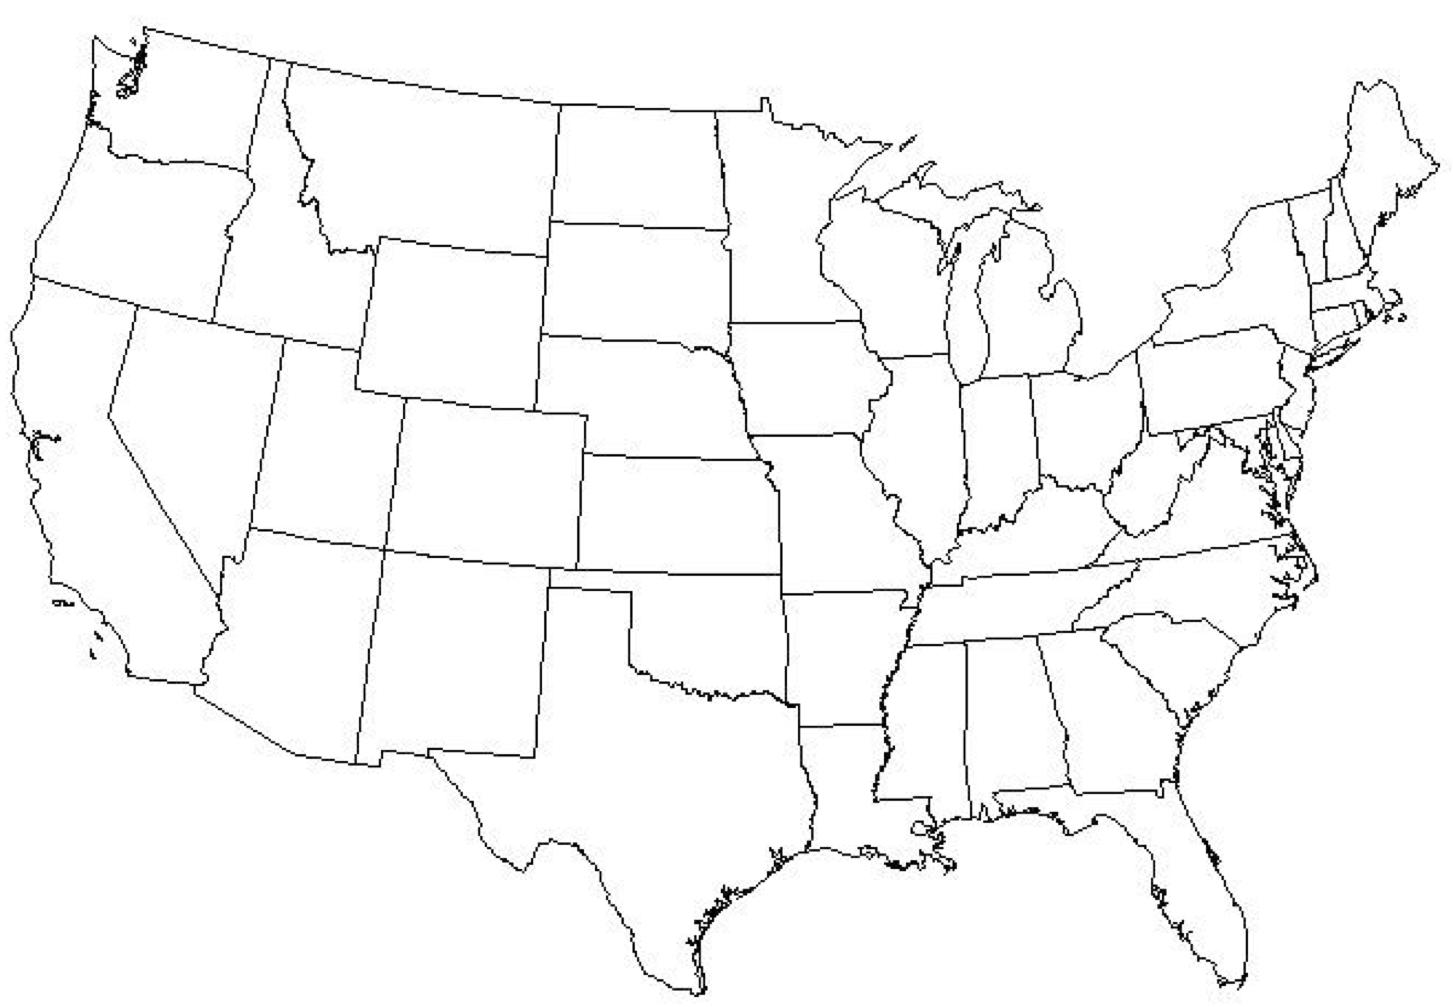 USA States map quiz - USA States quiz map (Northern America ... on map of oceania quiz, map of greece quiz, map of latitude and longitude, us map quiz, states quiz, map of the world quiz, map of asia quiz, map of 50 states, map of middle east quiz, world physical map quiz, map of canada quiz, map of israel quiz, usa geography map quiz, map of middle america quiz, map of venezuela quiz, map of central america quiz, map of north america quiz, map of africa quiz, map of europe quiz, map of countries quiz,